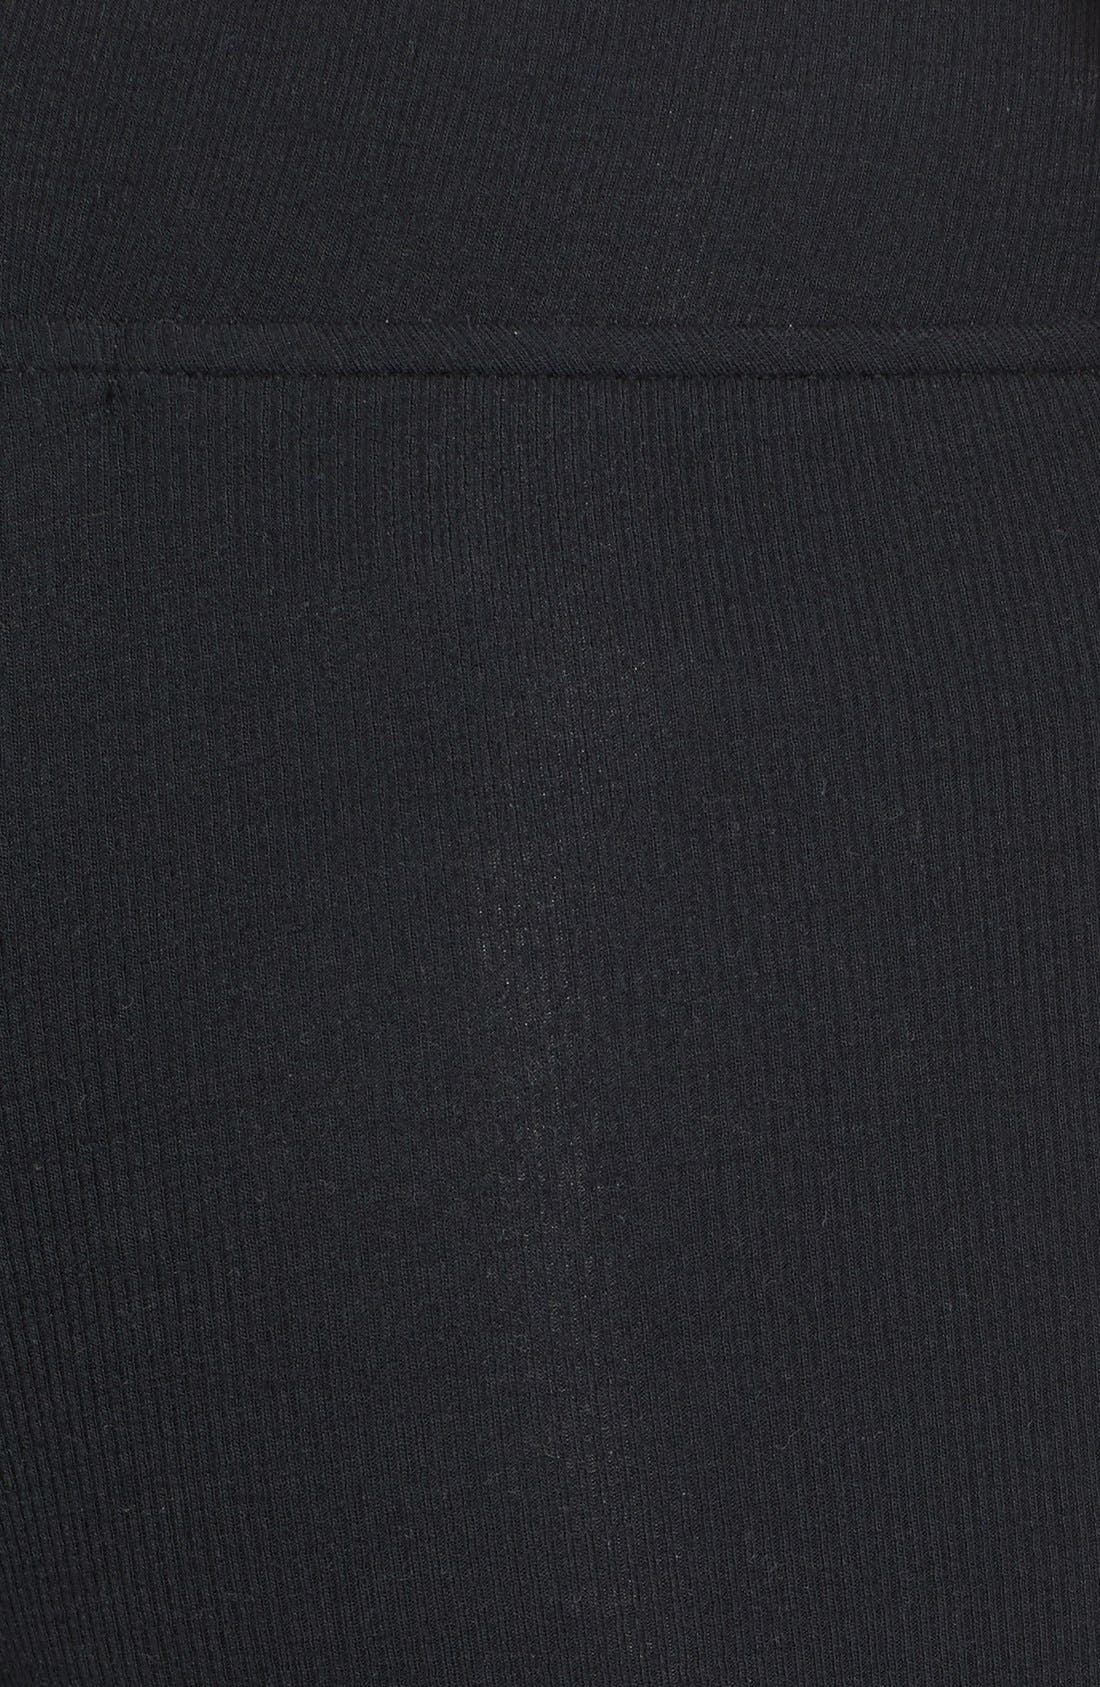 Rib Knit Yoga Leggings,                             Alternate thumbnail 5, color,                             Black